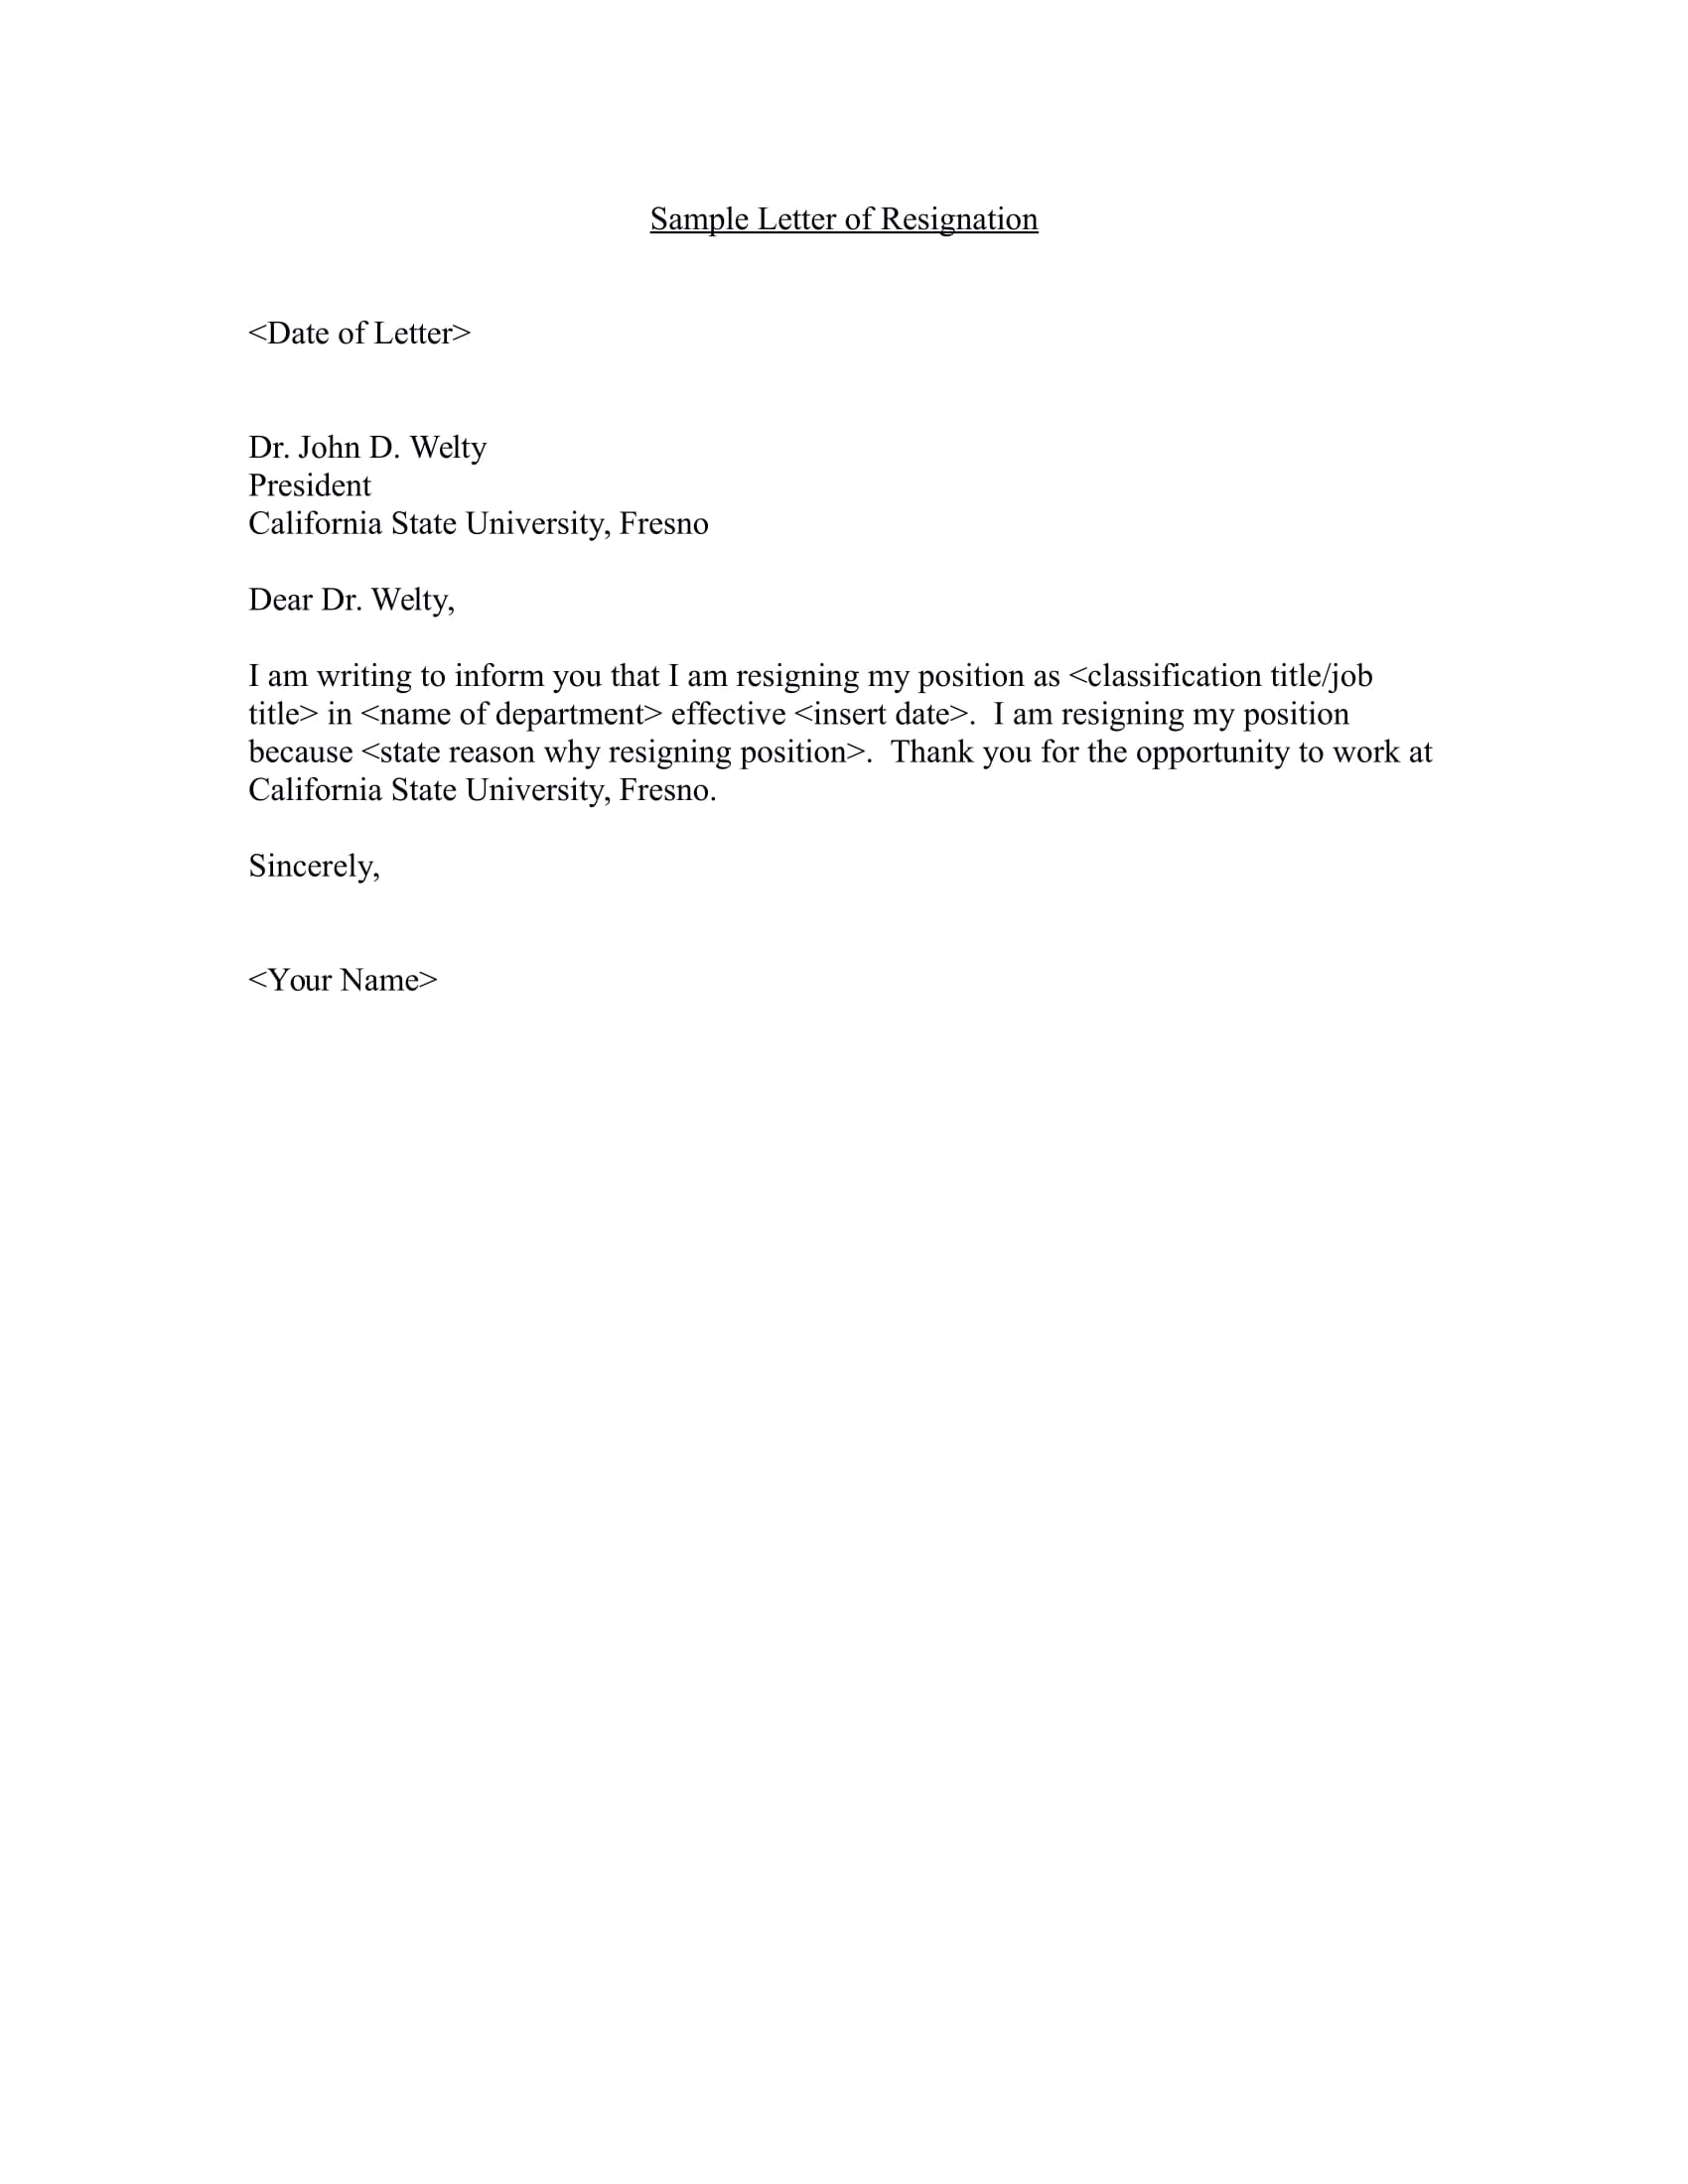 Sample Of Resignation Letter From Job 17 Free Resignation Letter Pdf Doc Examples